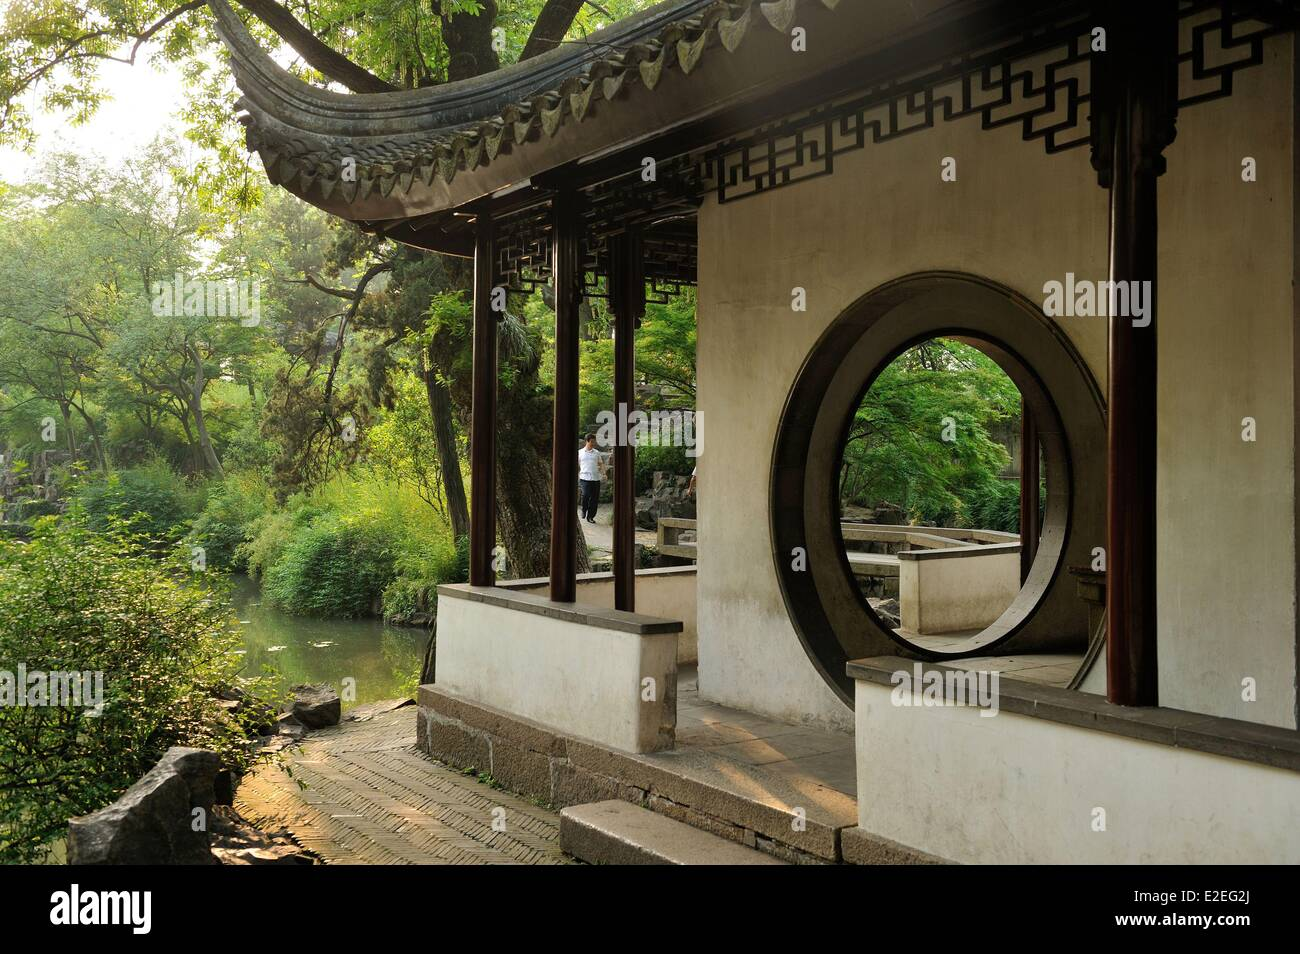 China, Jiangsu province, Suzhou, the Humble Administrator's garden listed as World Heritage by UNESCO - Stock Image